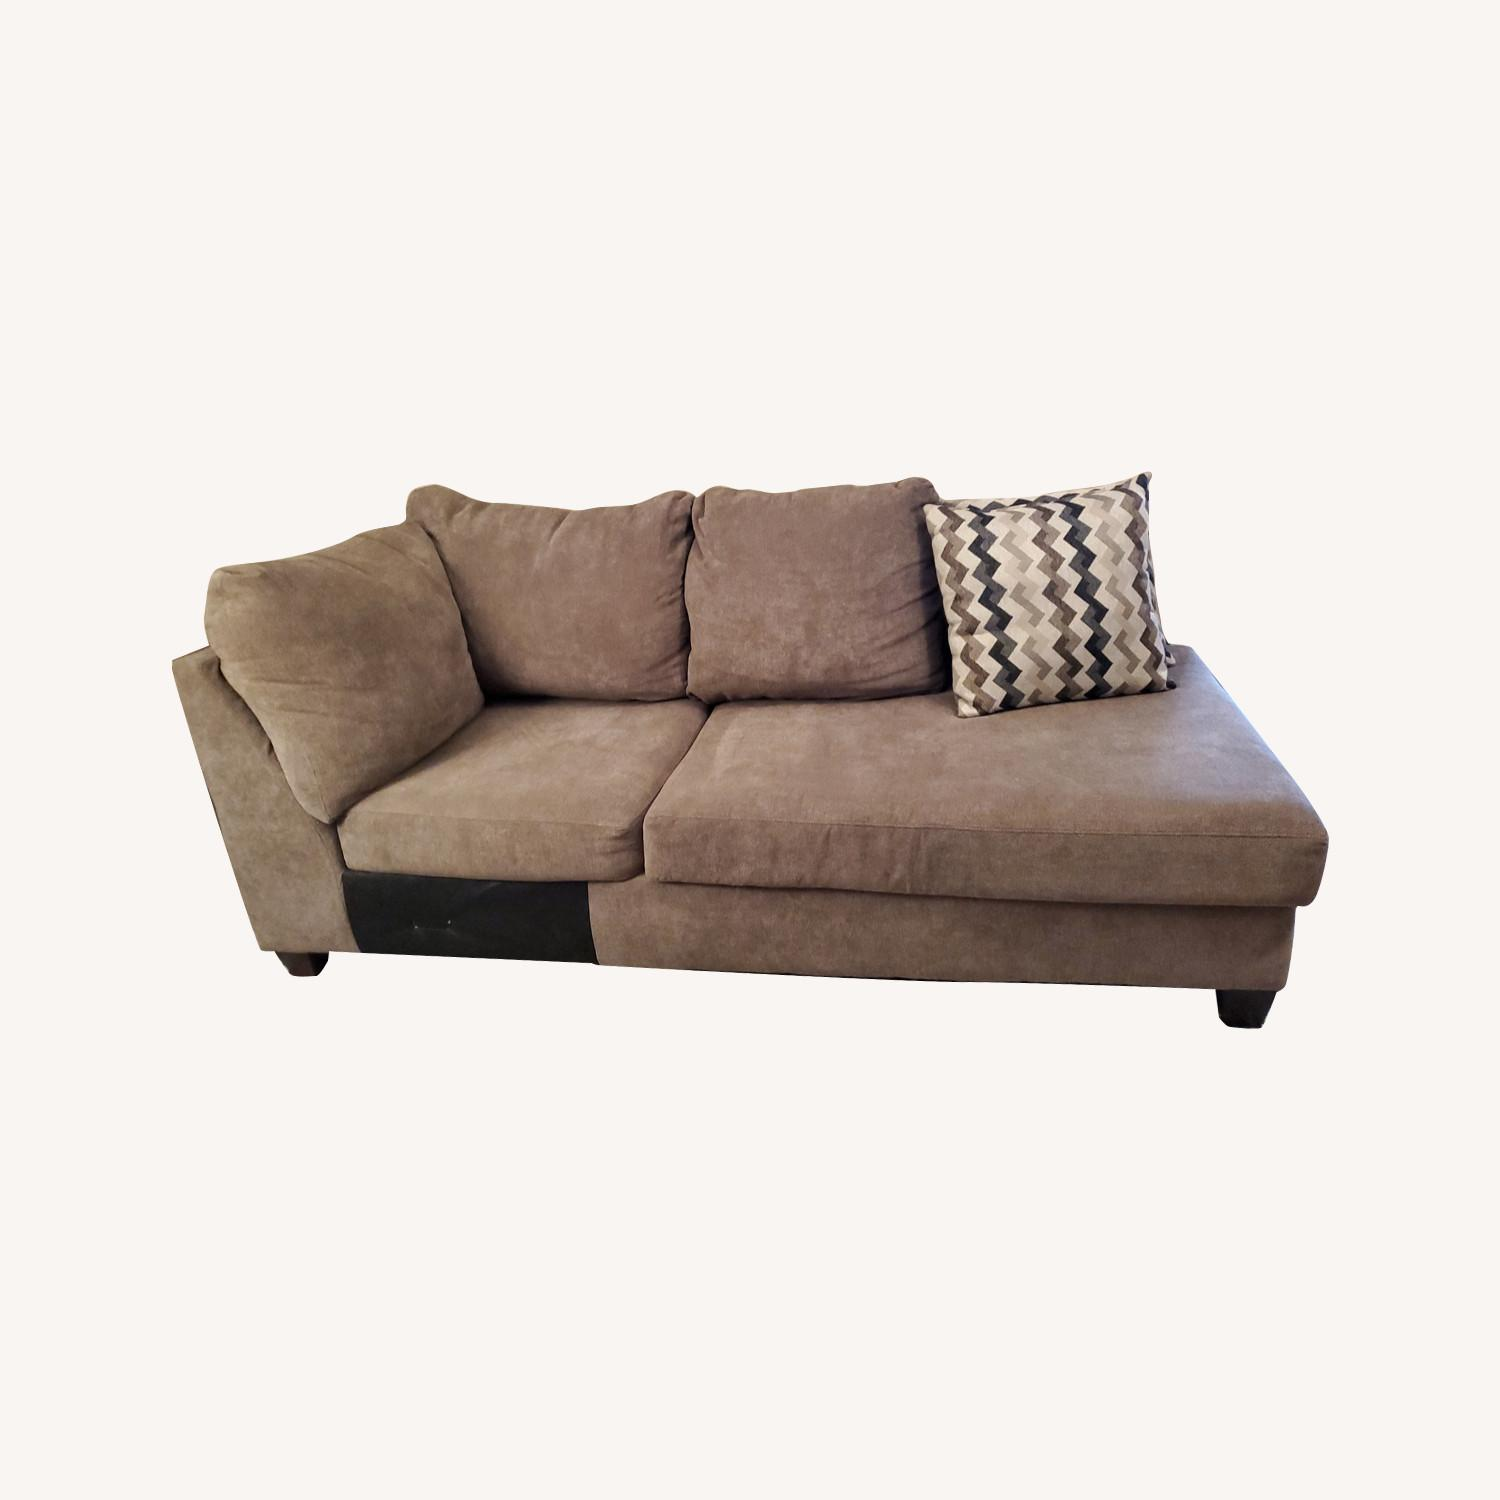 Bob's Discount 2 Piece Sectional - image-6